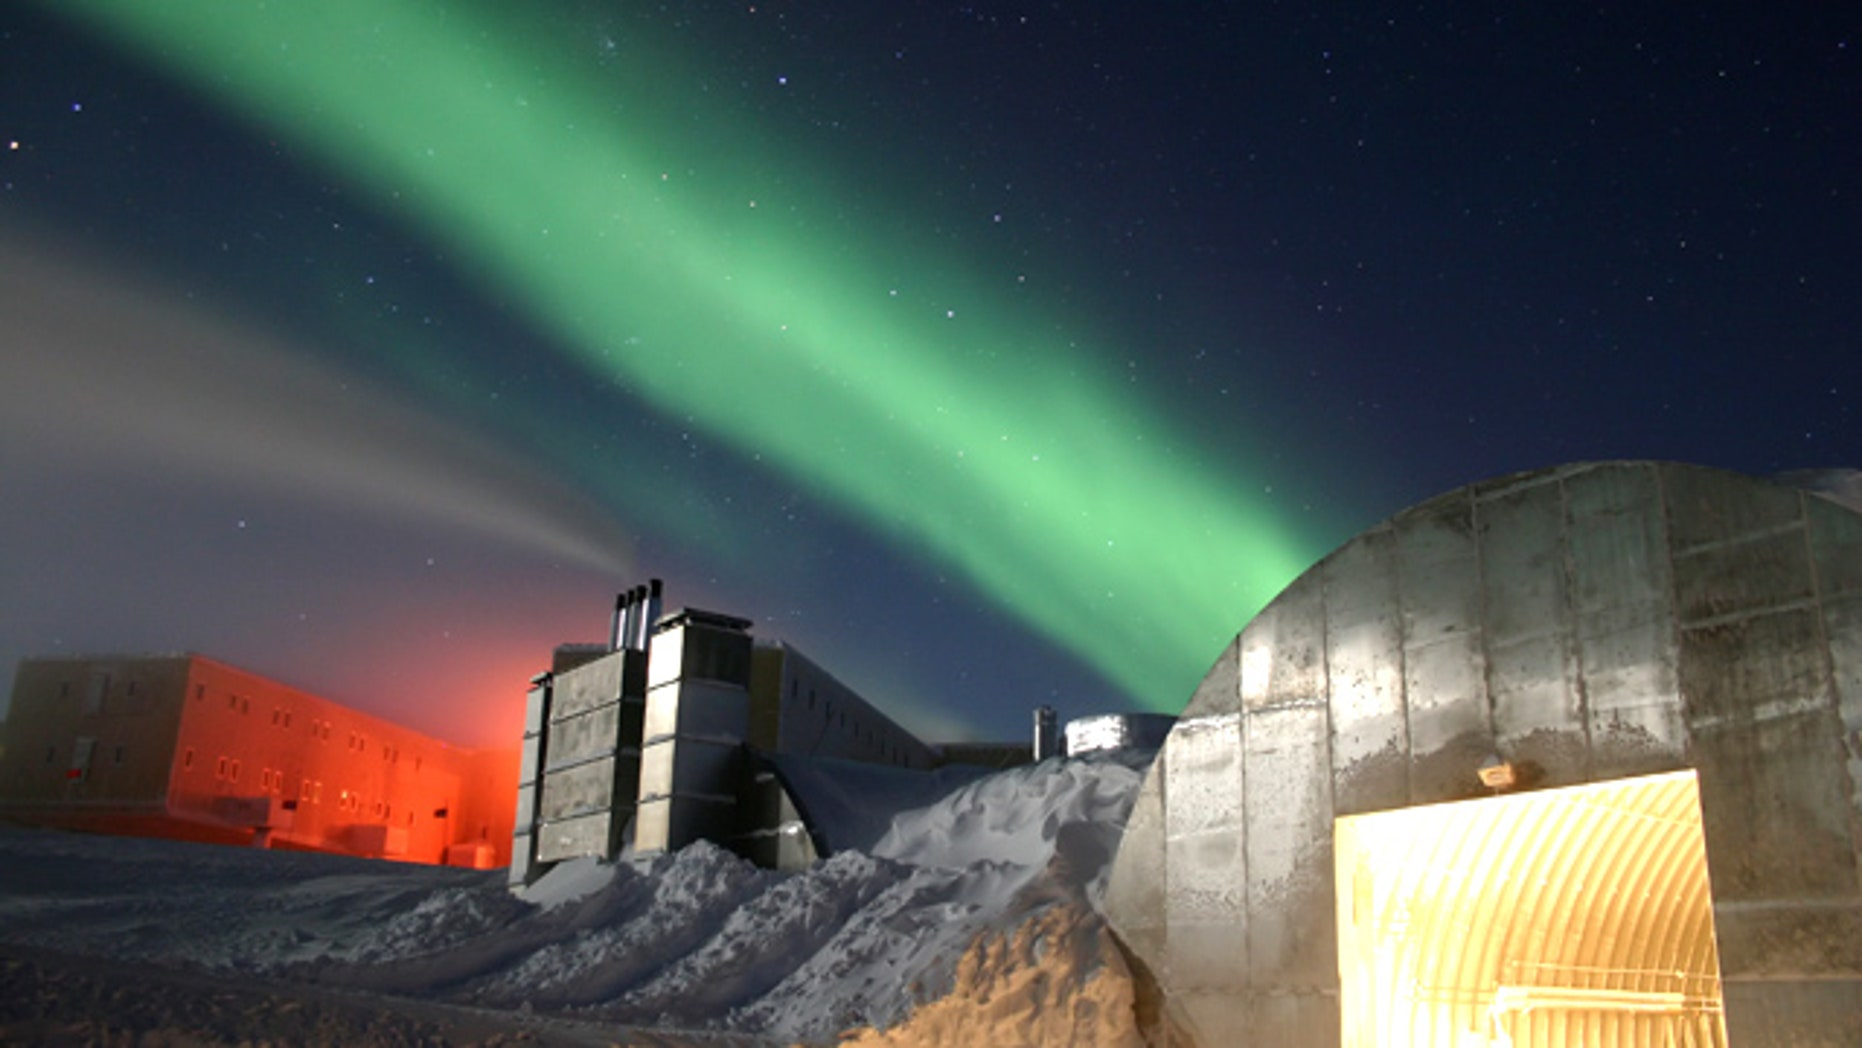 Amundsen-Scott South Pole Station during the long Antarctic night, with a new station at far left, power plant in the center and the Aurora Australis dancing through the sky.